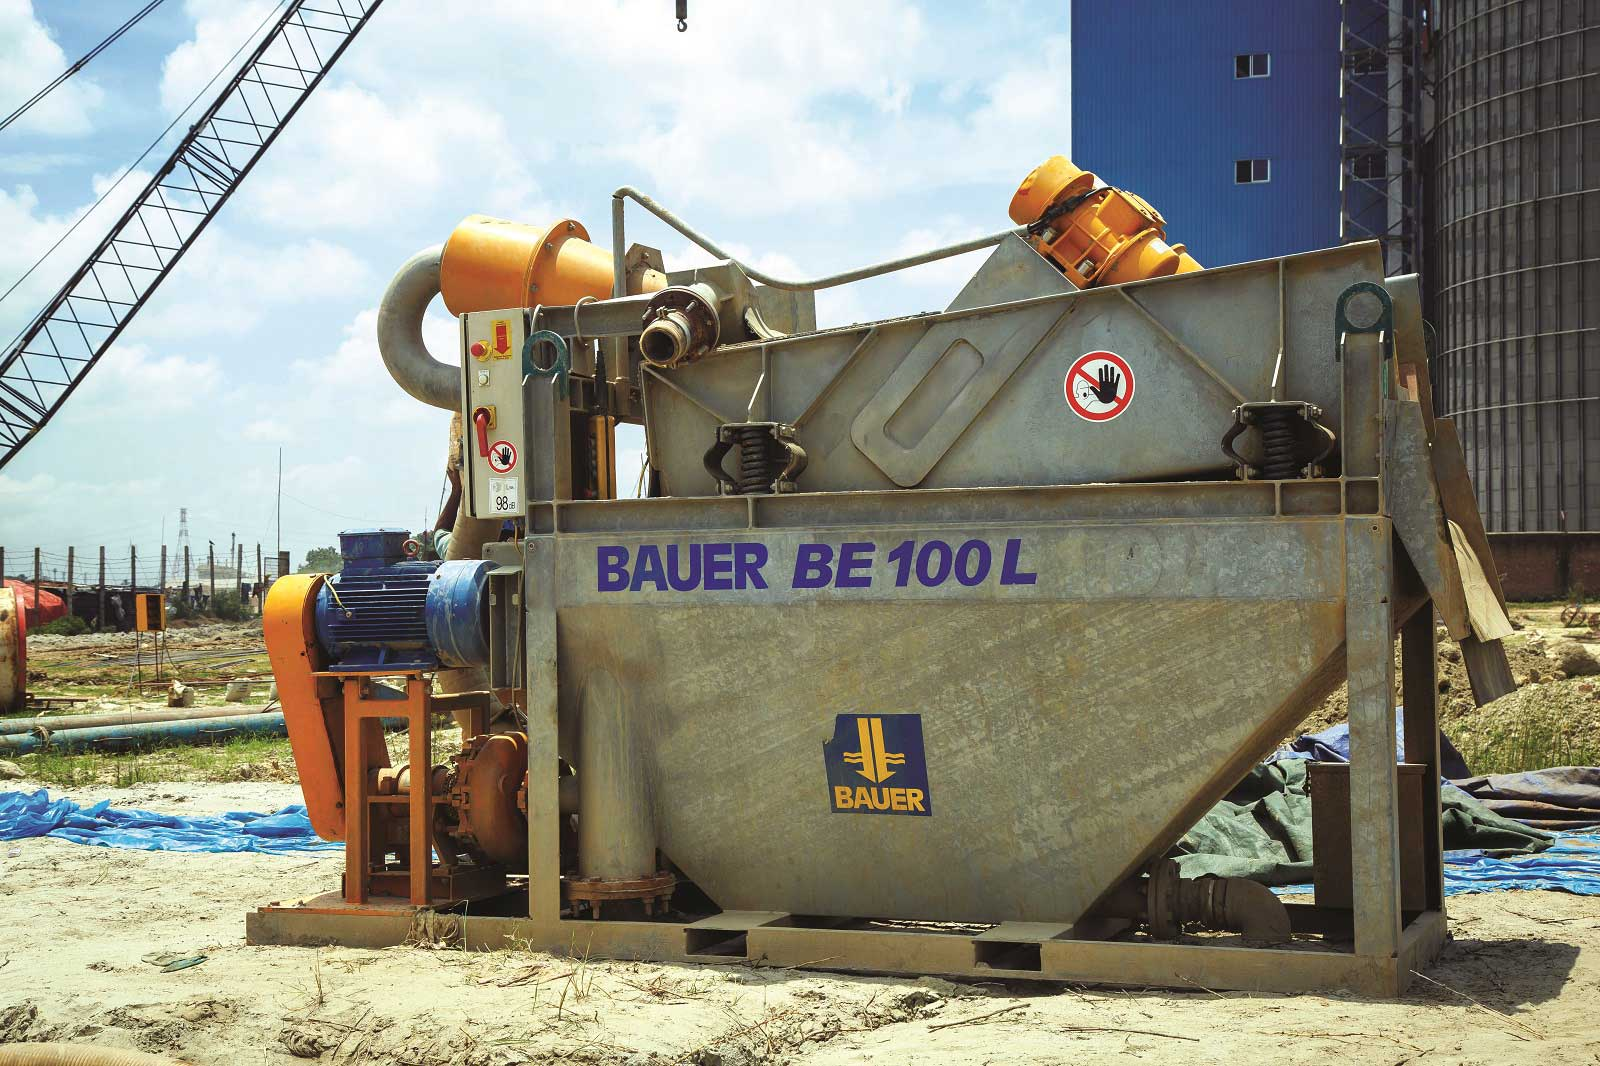 De-sander, Bauer, Model BE 100L, Germany.